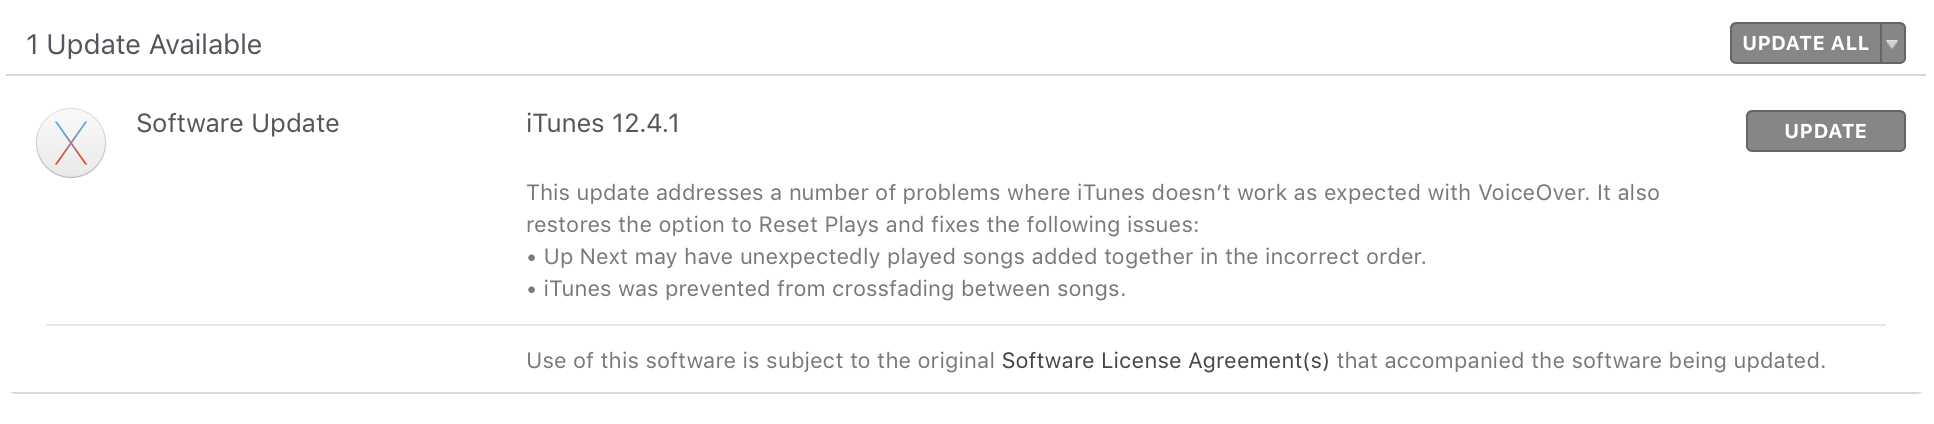 iTunes 12.4.1 update Mac App Store